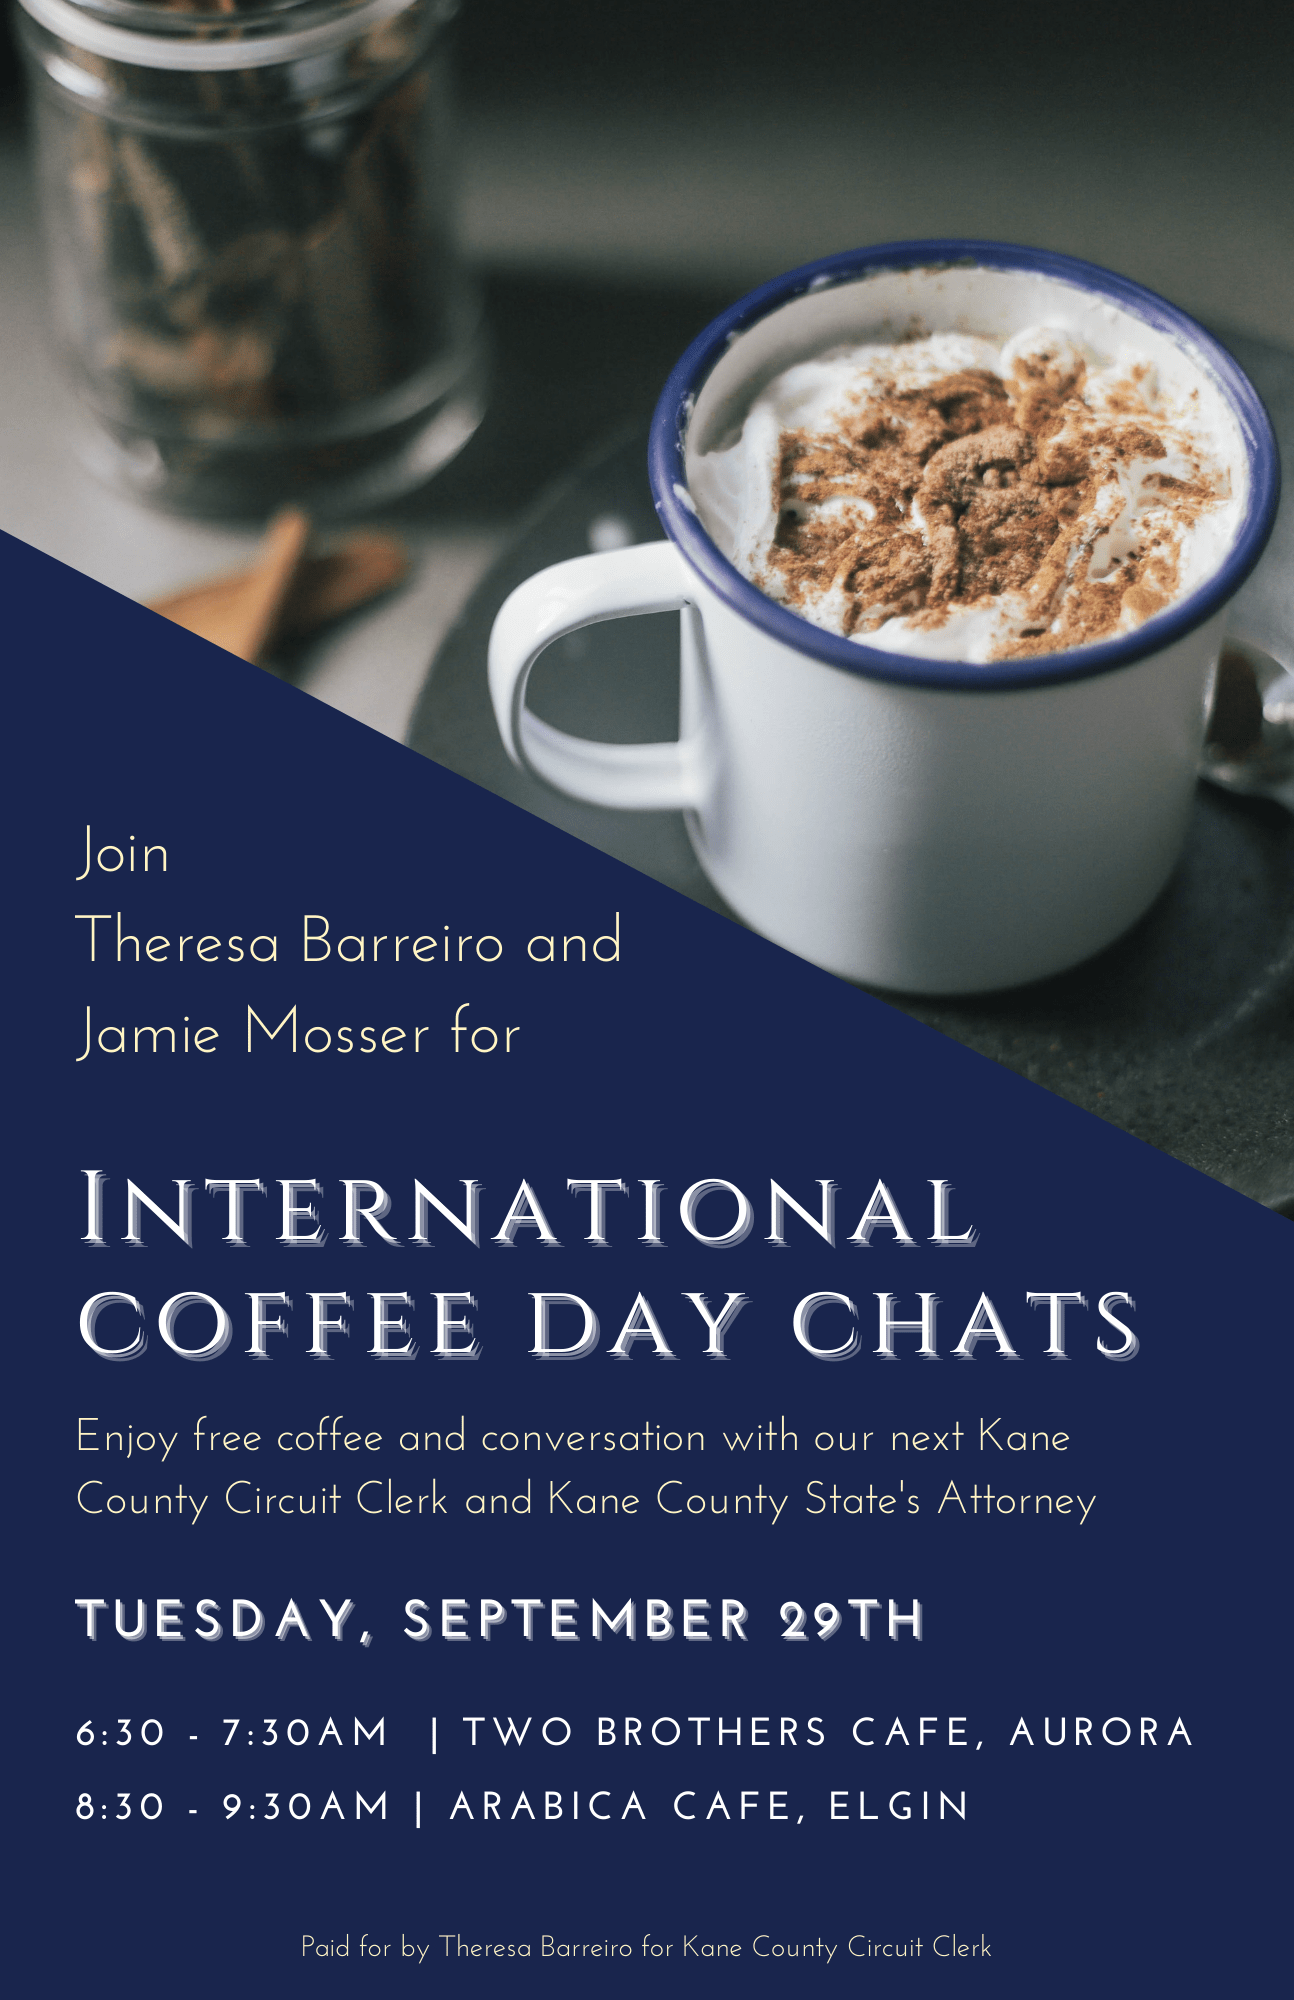 International Coffee Day Chat with Barreiro & Mosser